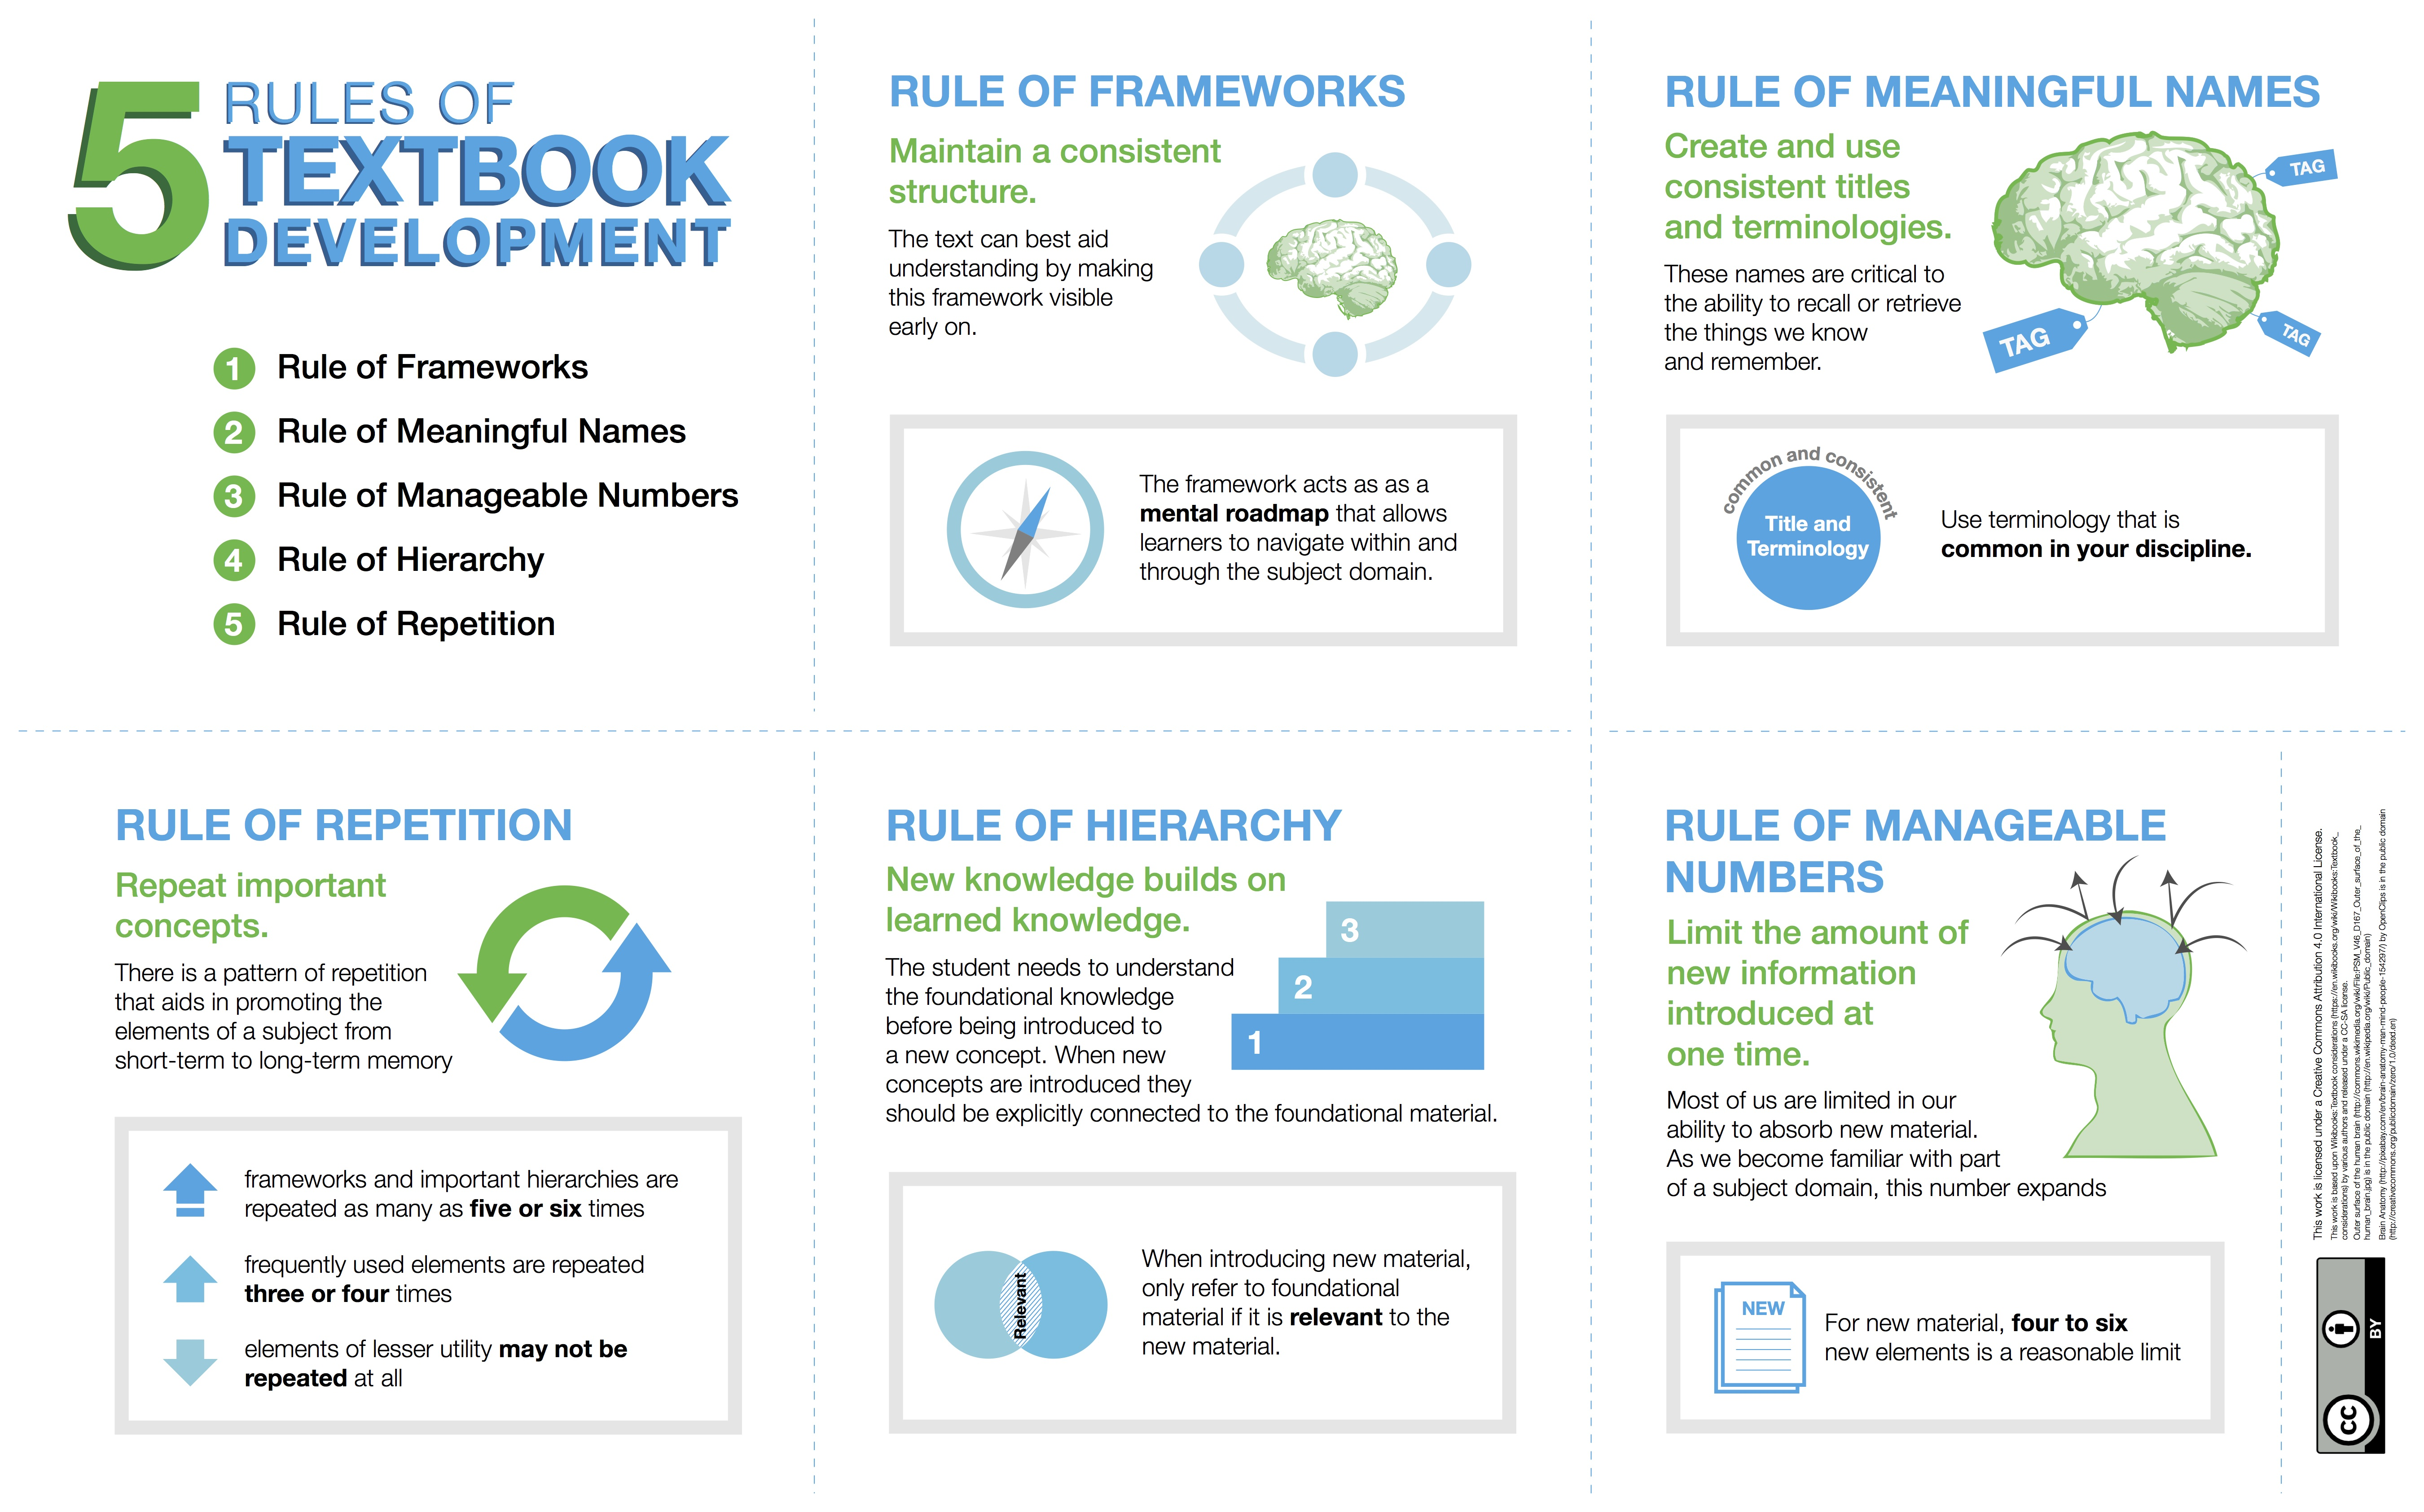 5 rules of textbook development